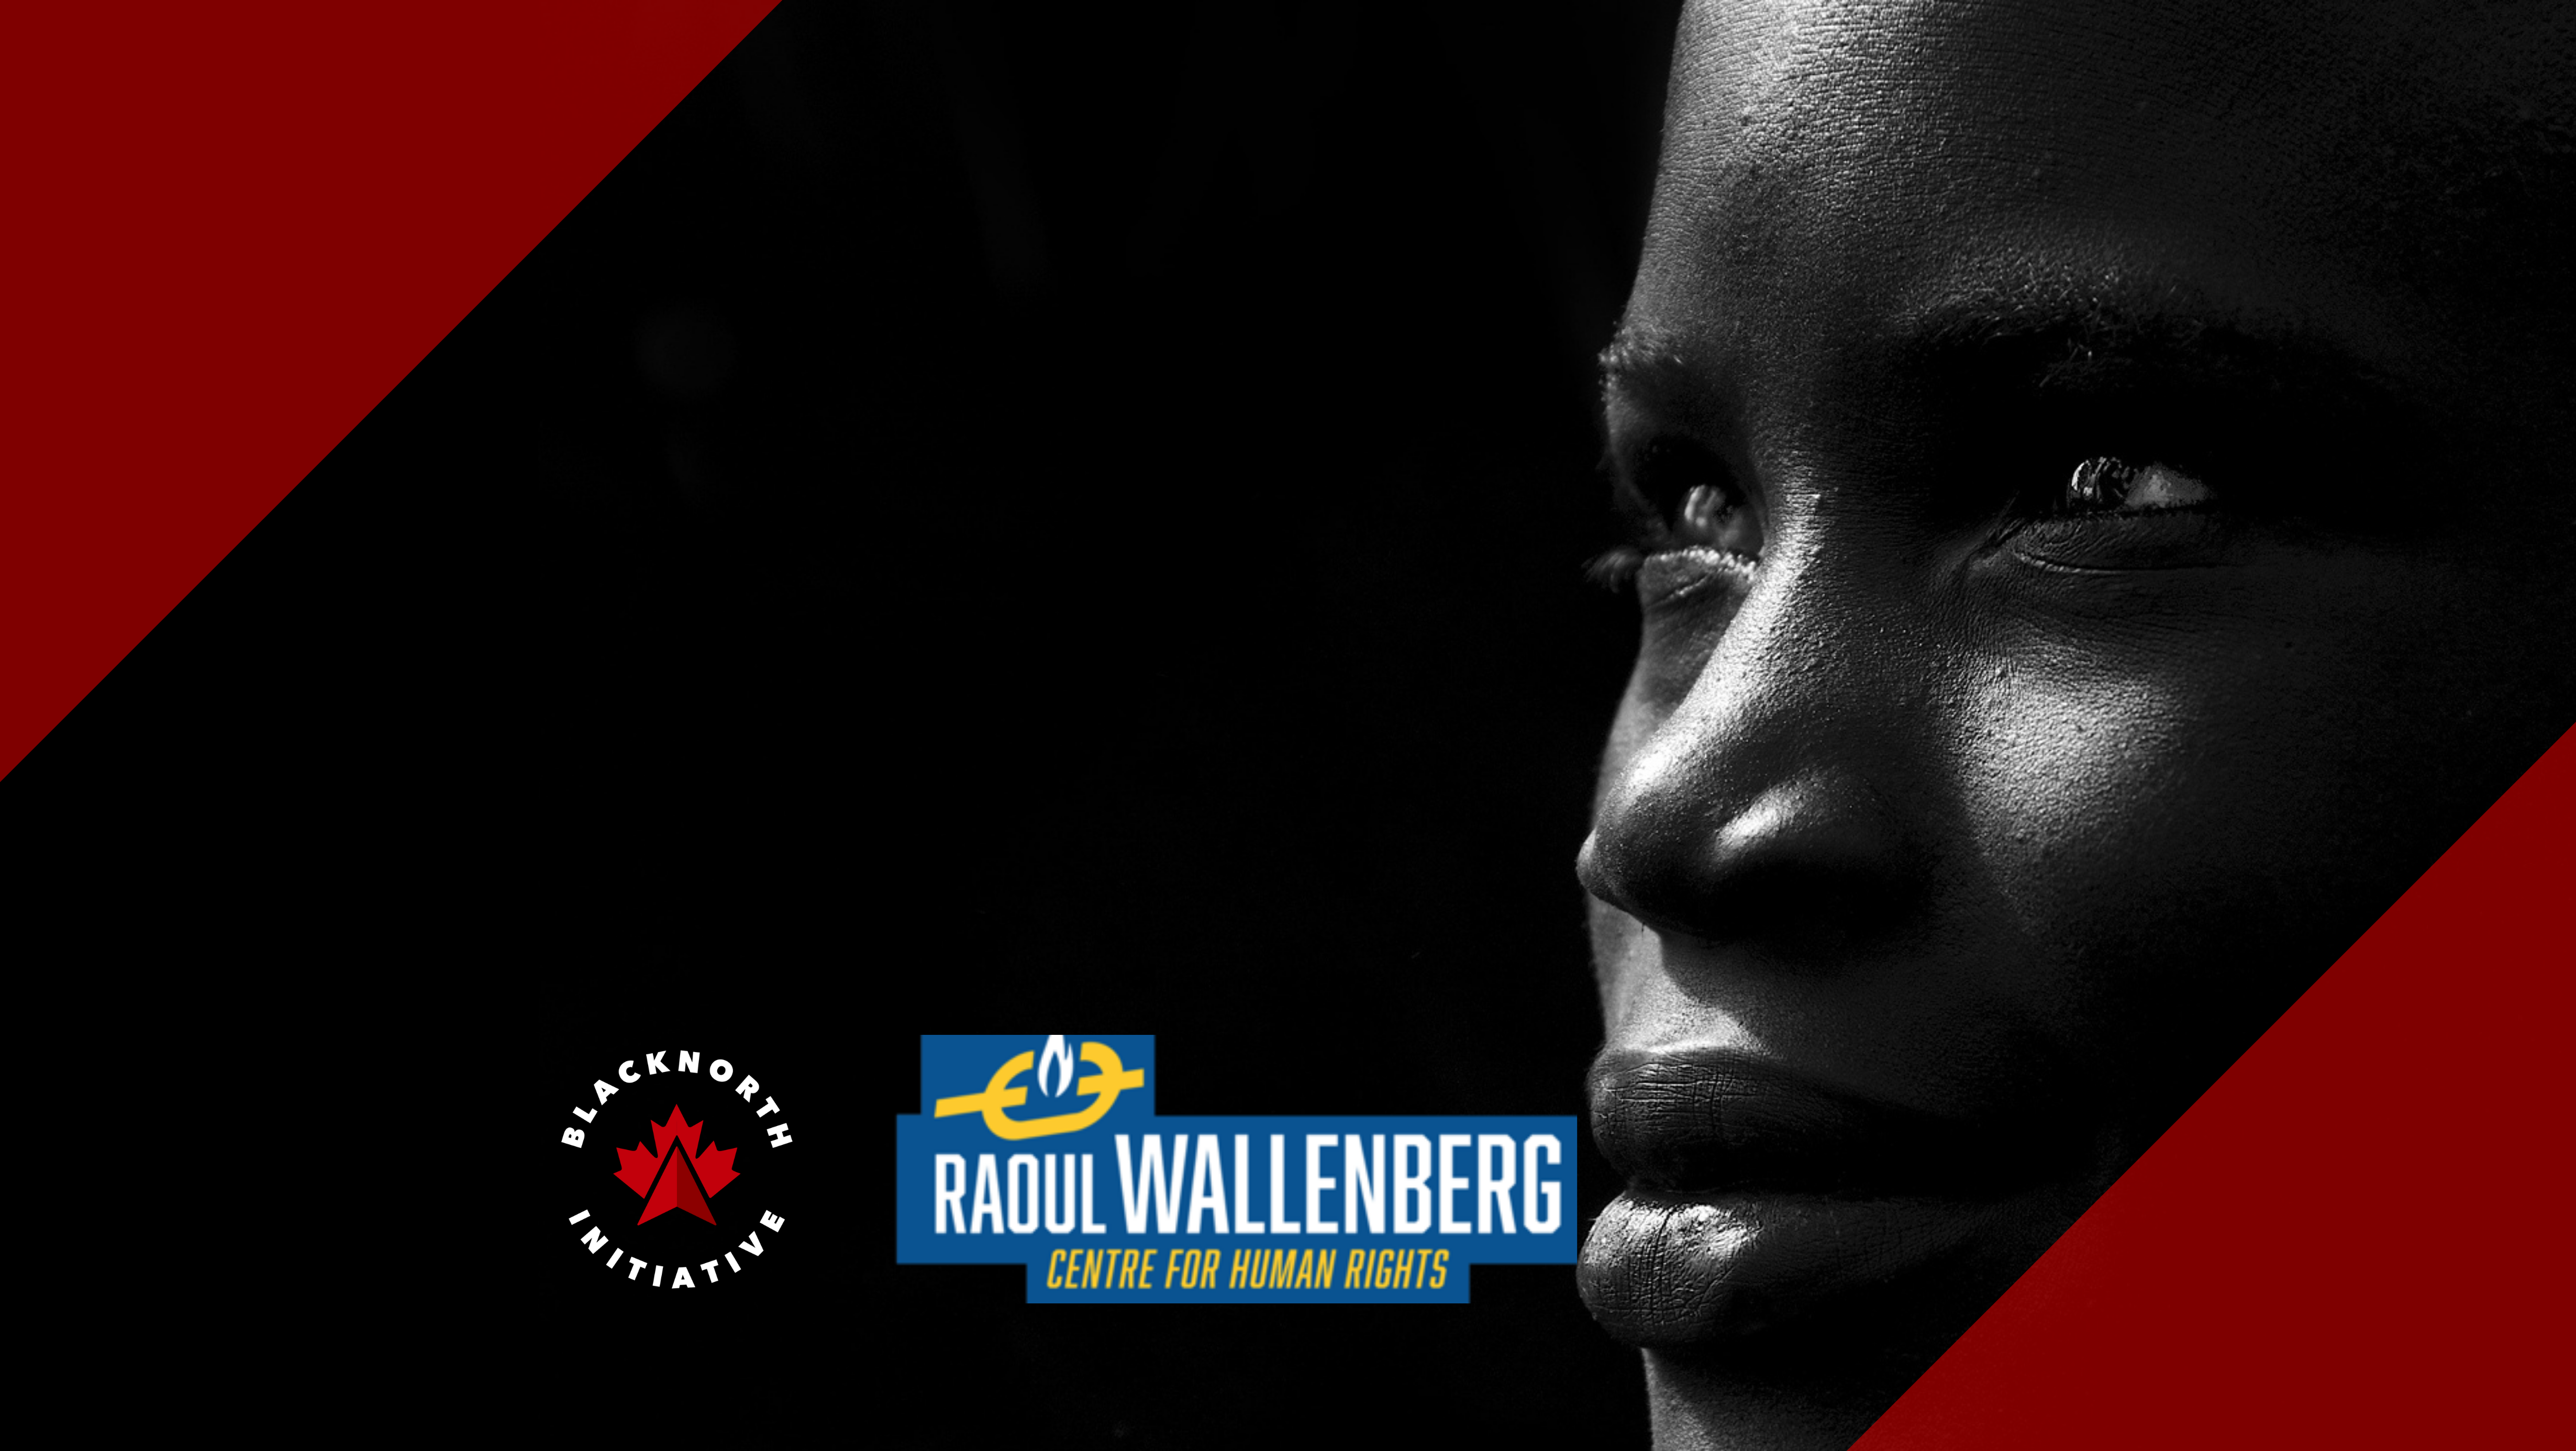 UNITY STATEMENT FROM THE BLACKNORTH INITIATIVE AND THE RAOUL WALLENBERG CENTER FOR HUMAN RIGHTS